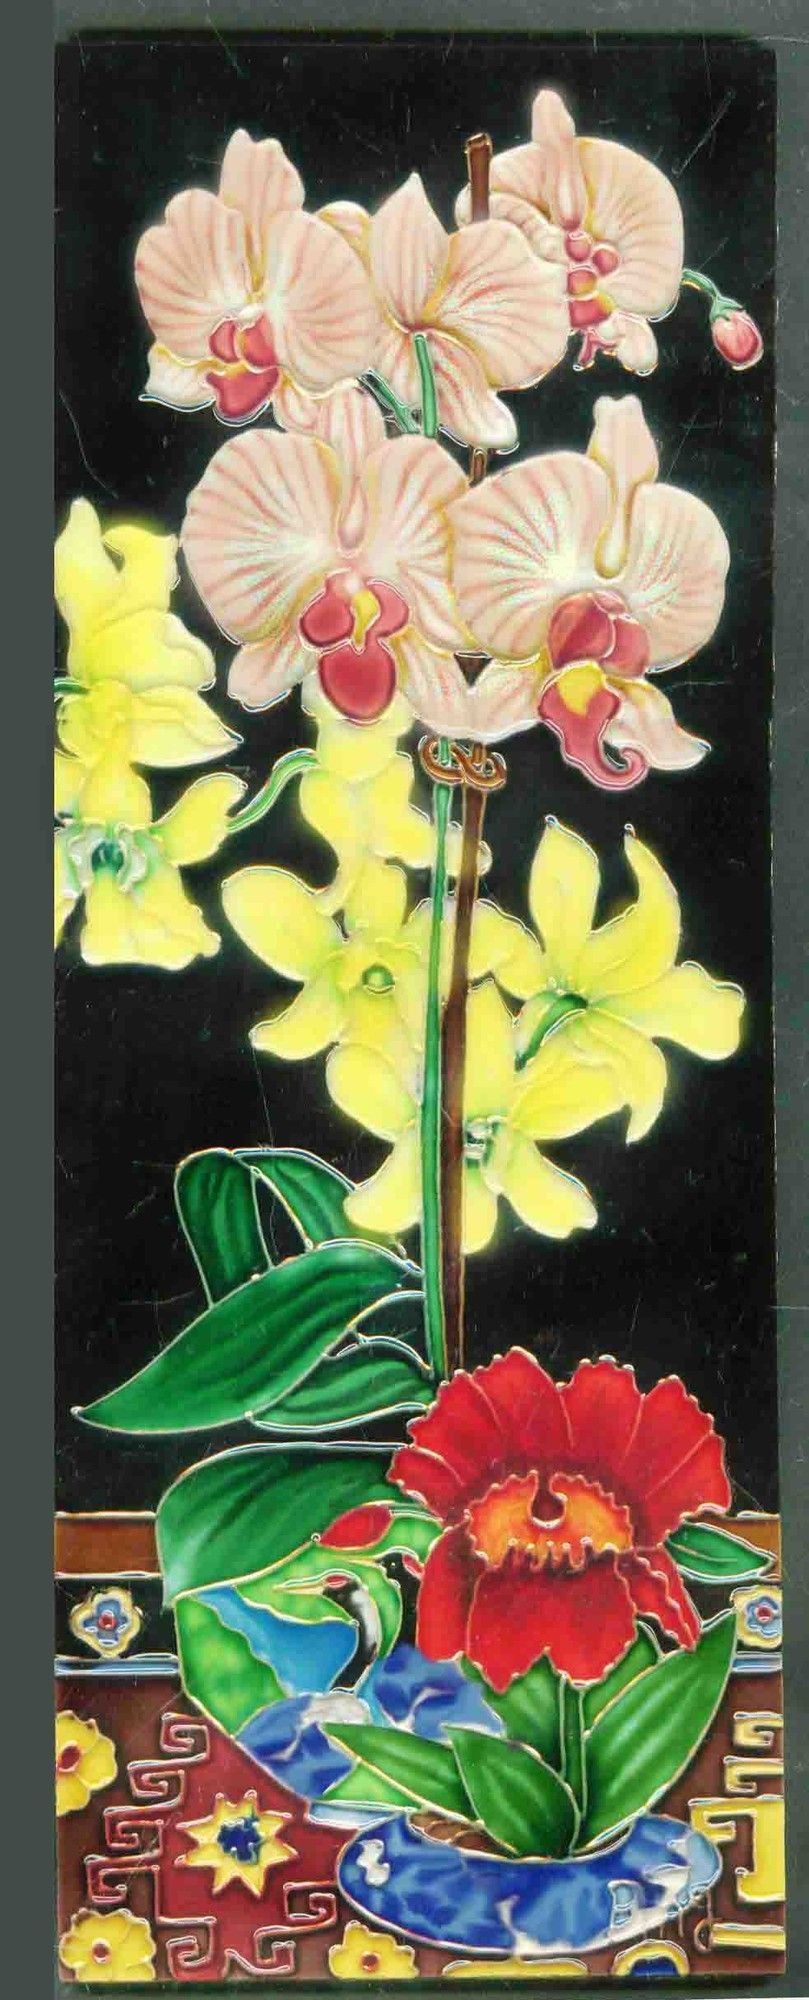 where to buy silver vase orchids of pink yellow orchid vase tile wall decor yellow orchid pink yellow with pink yellow orchid vase tile wall decor